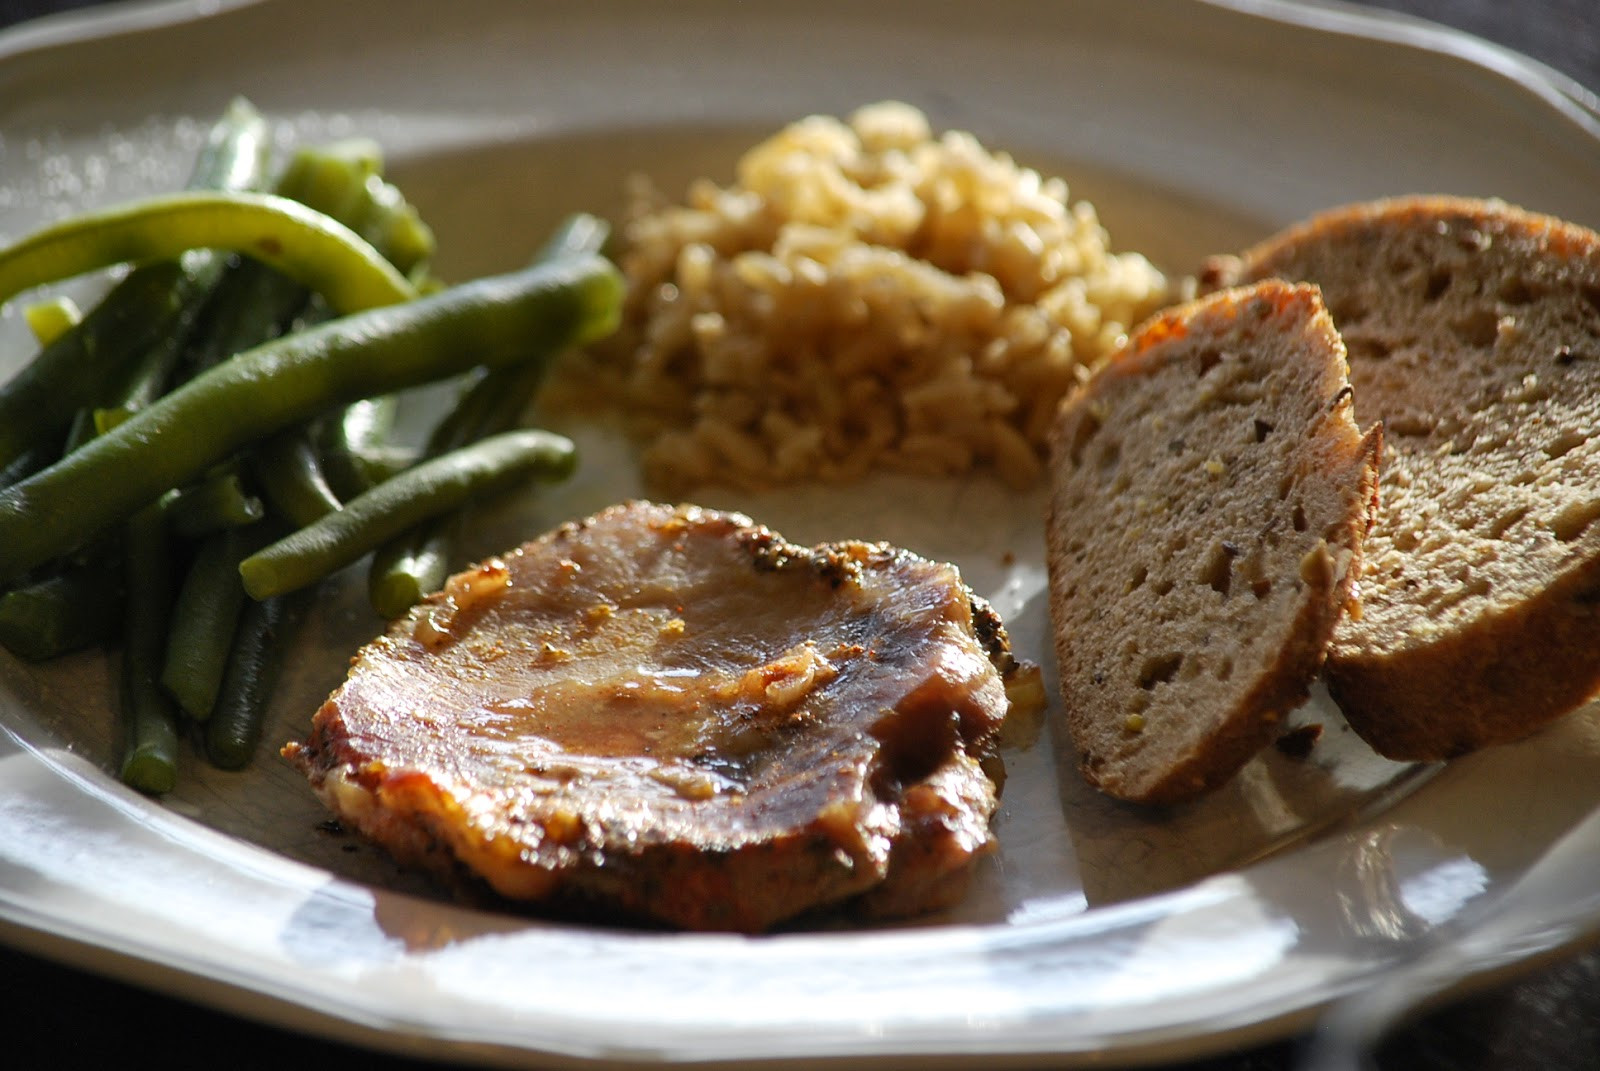 Crock Pot Pork Chops Recipe  My story in recipes Crock Pot Pork Chops